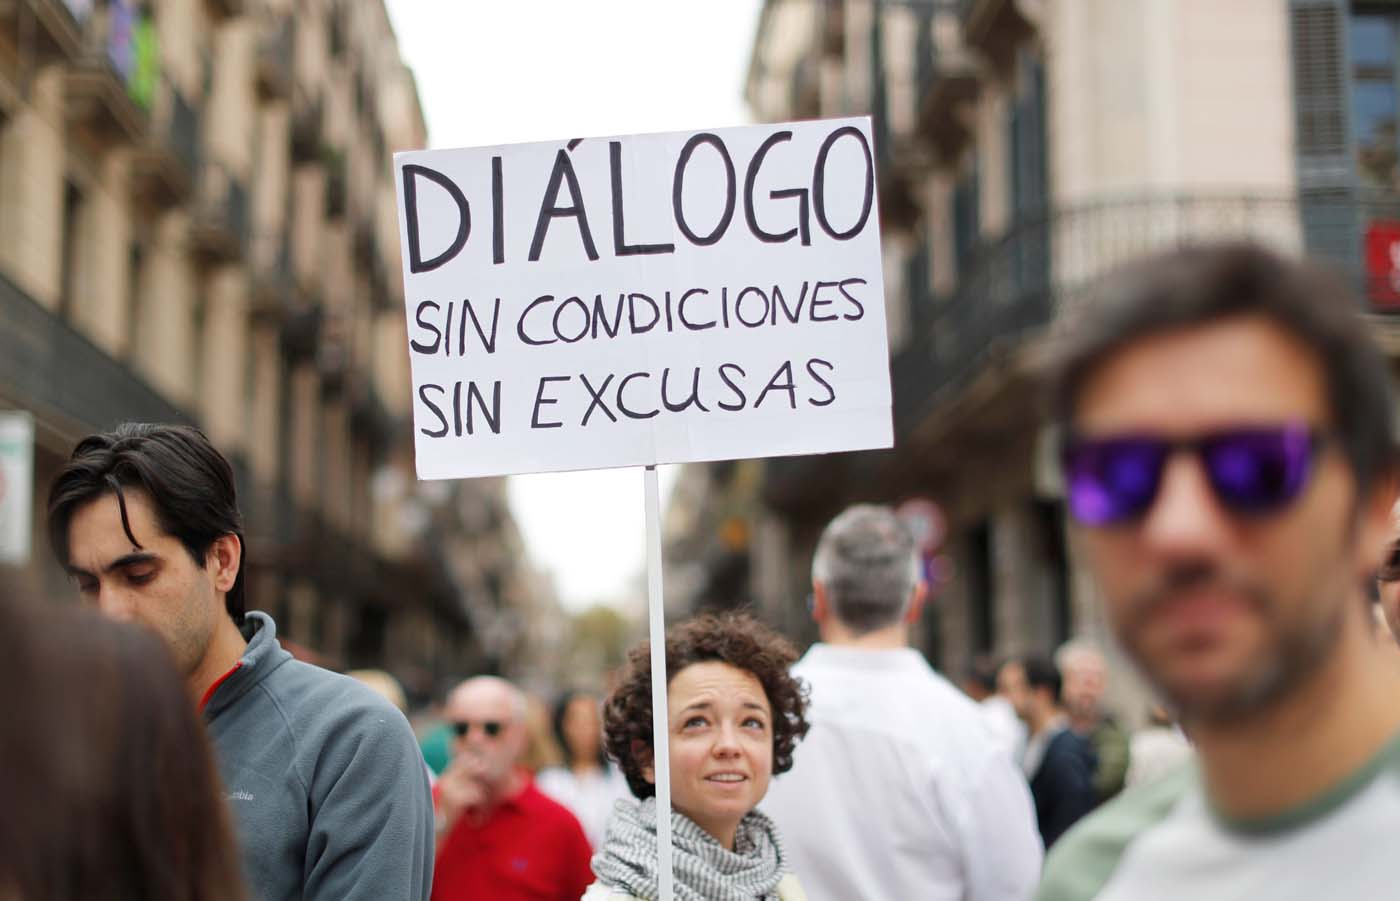 A woman holds a placard during a demonstration in favour of dialogue in a square in Barcelona, Spain, October 7, 2017 REUTERS/Gonzalo Fuentes